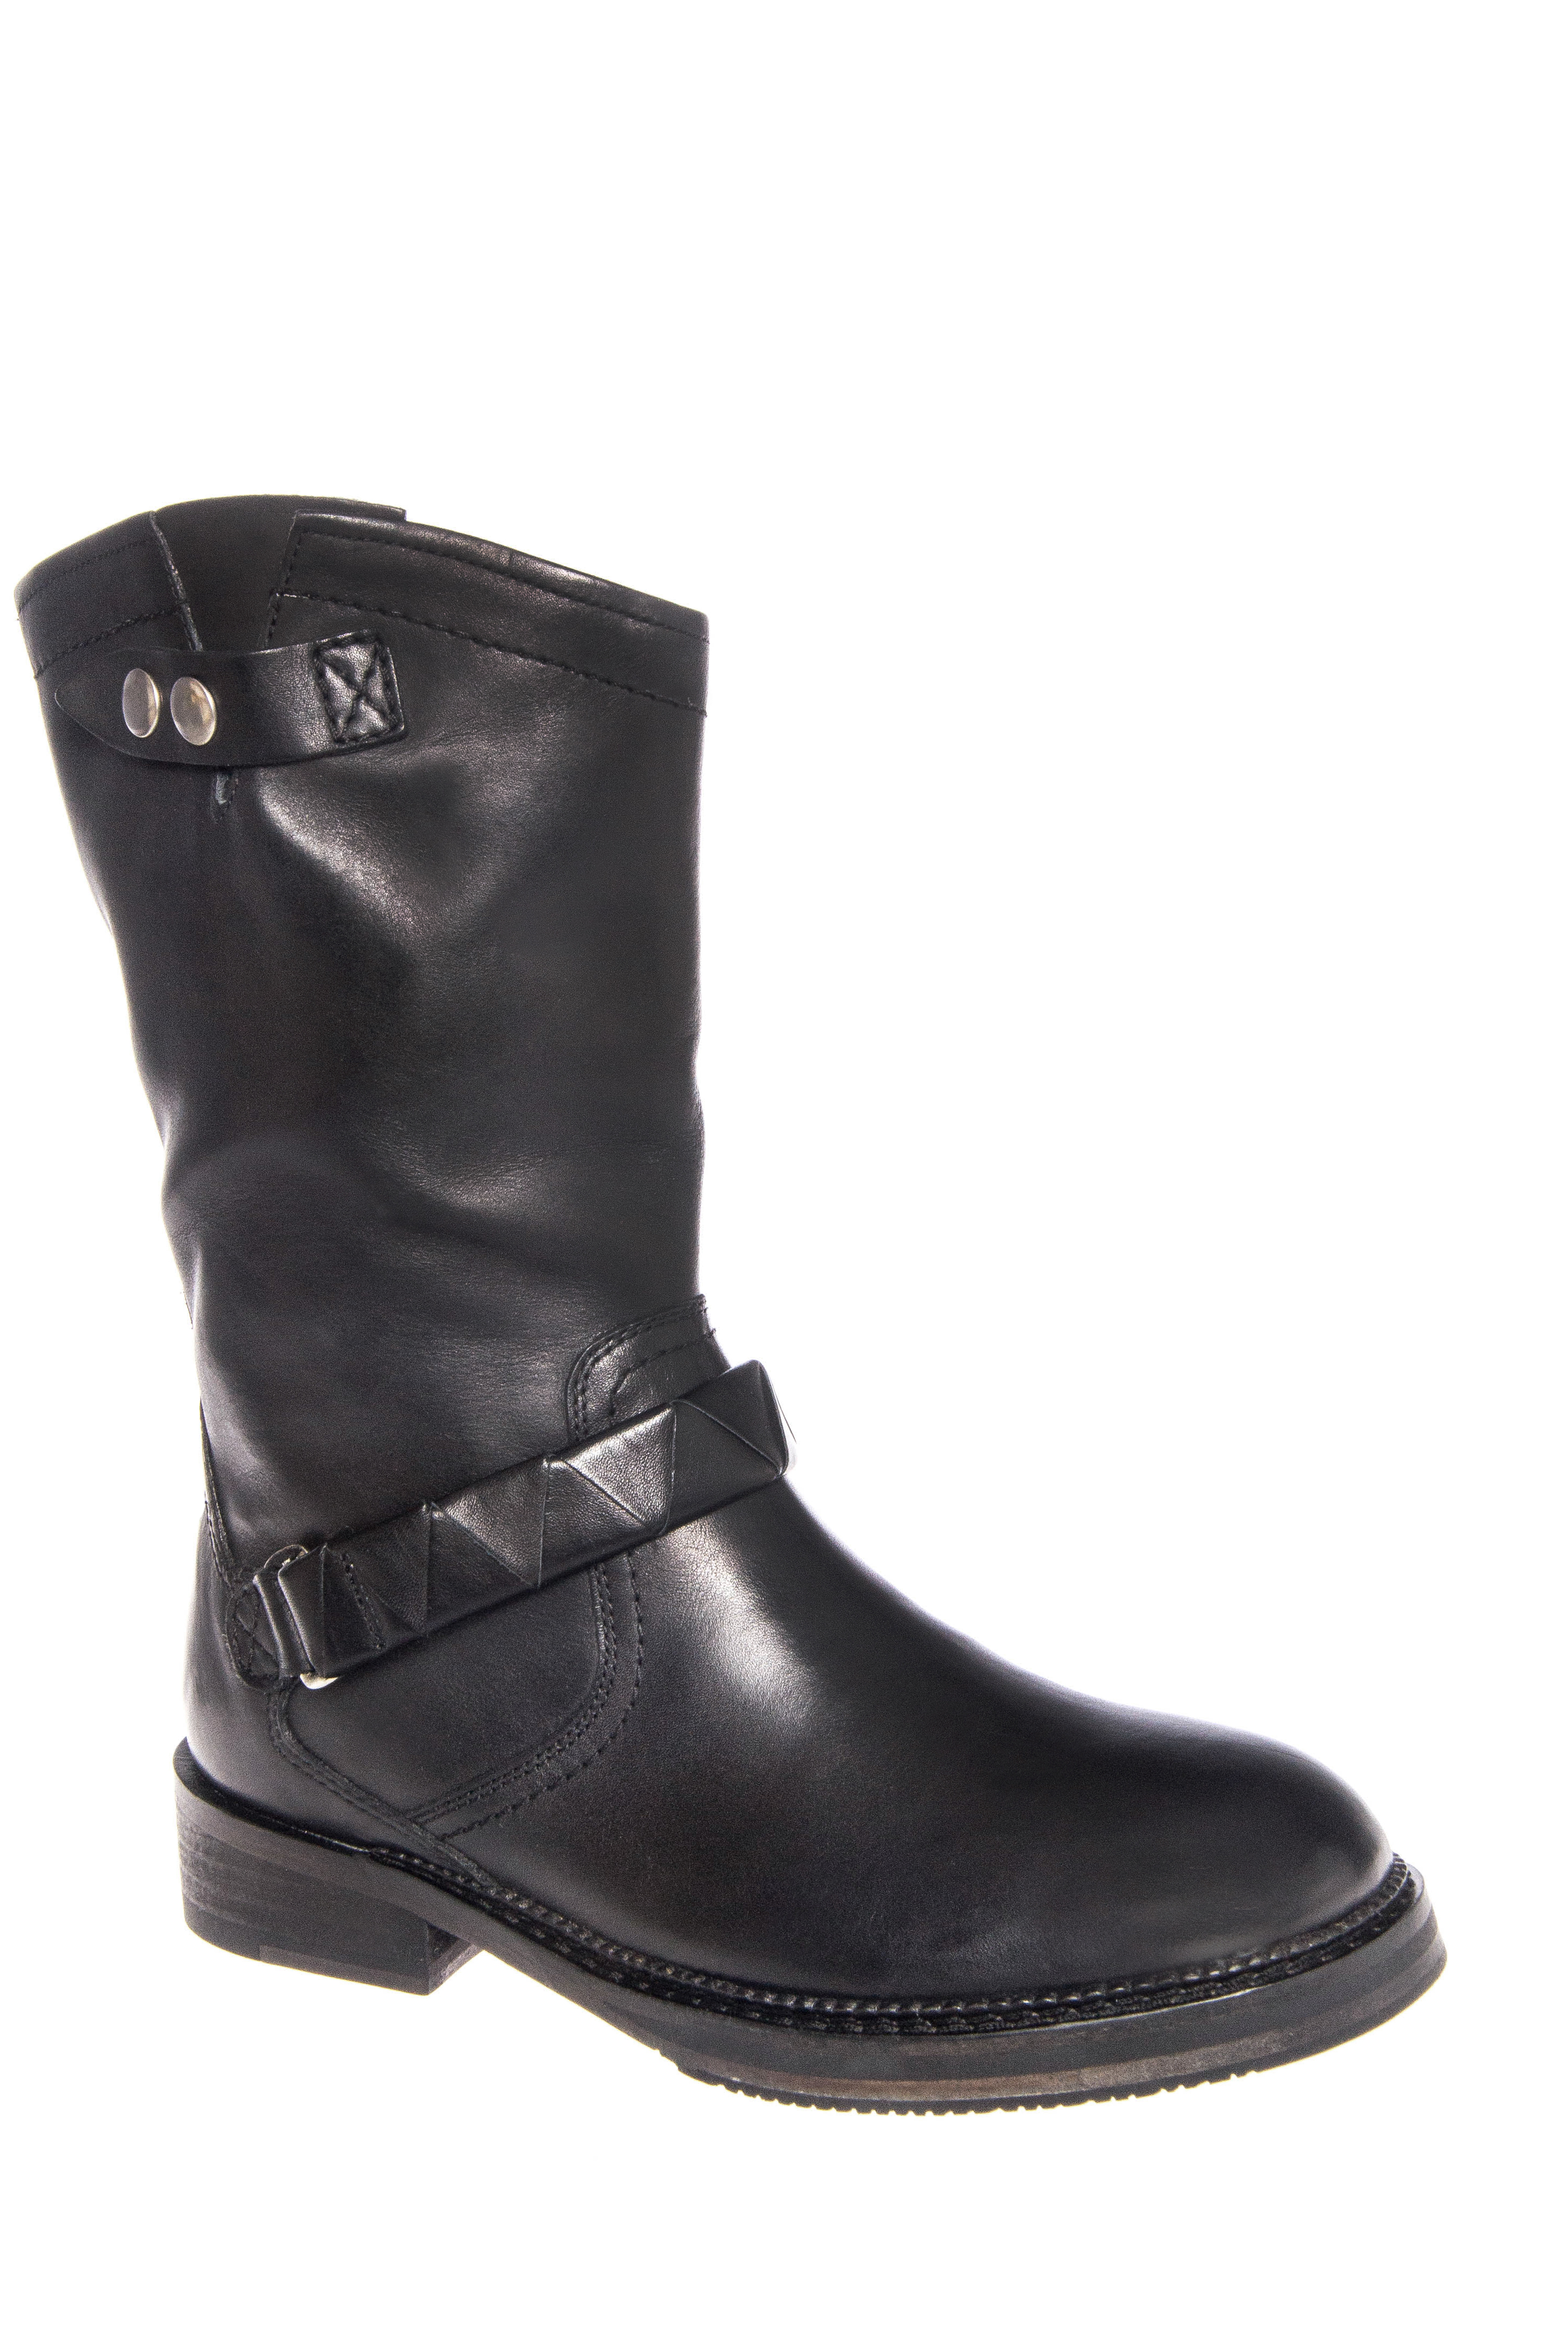 H By Hudson Boundary Low Heel Boots - Black